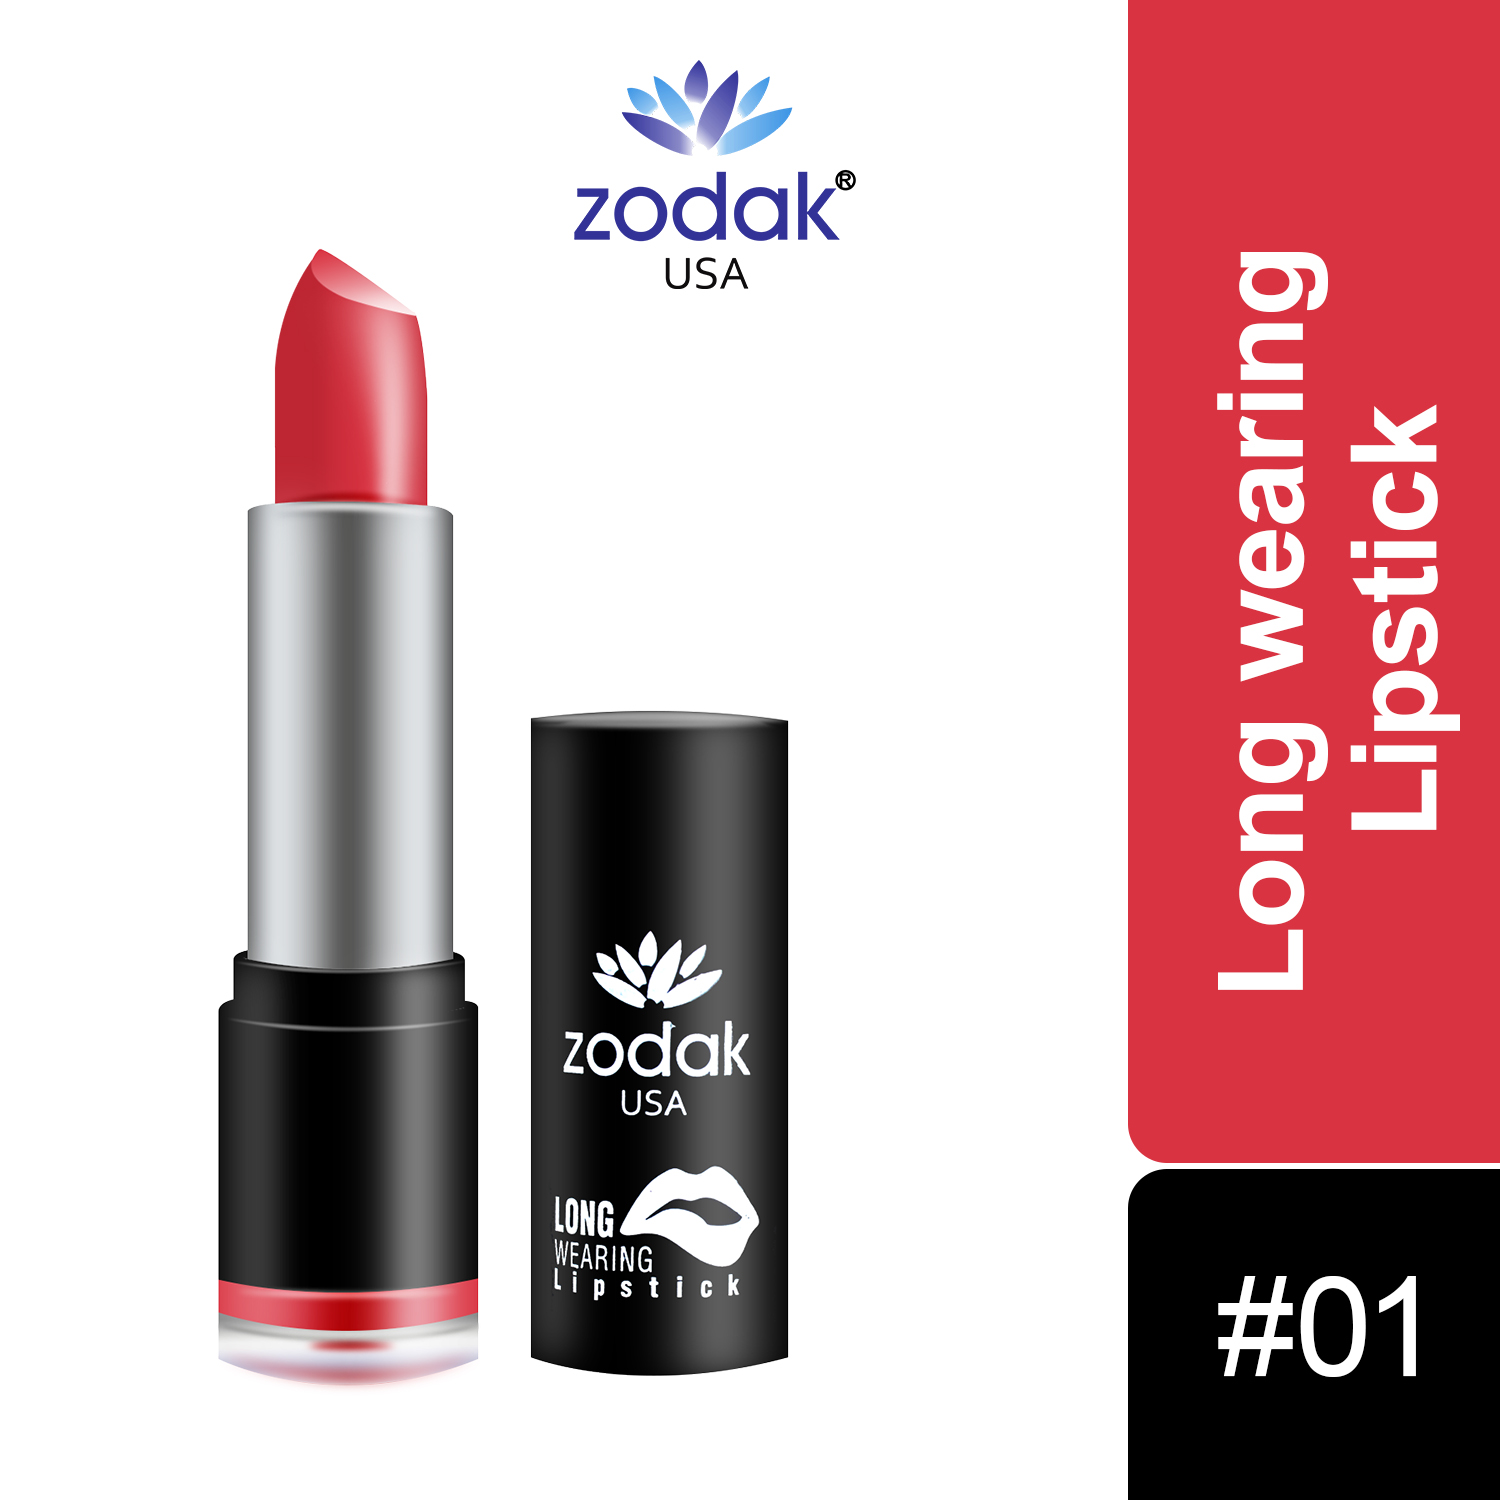 ZODAK Long Wearing Lipstick 3.8g (Rich Red, 3.8 g)